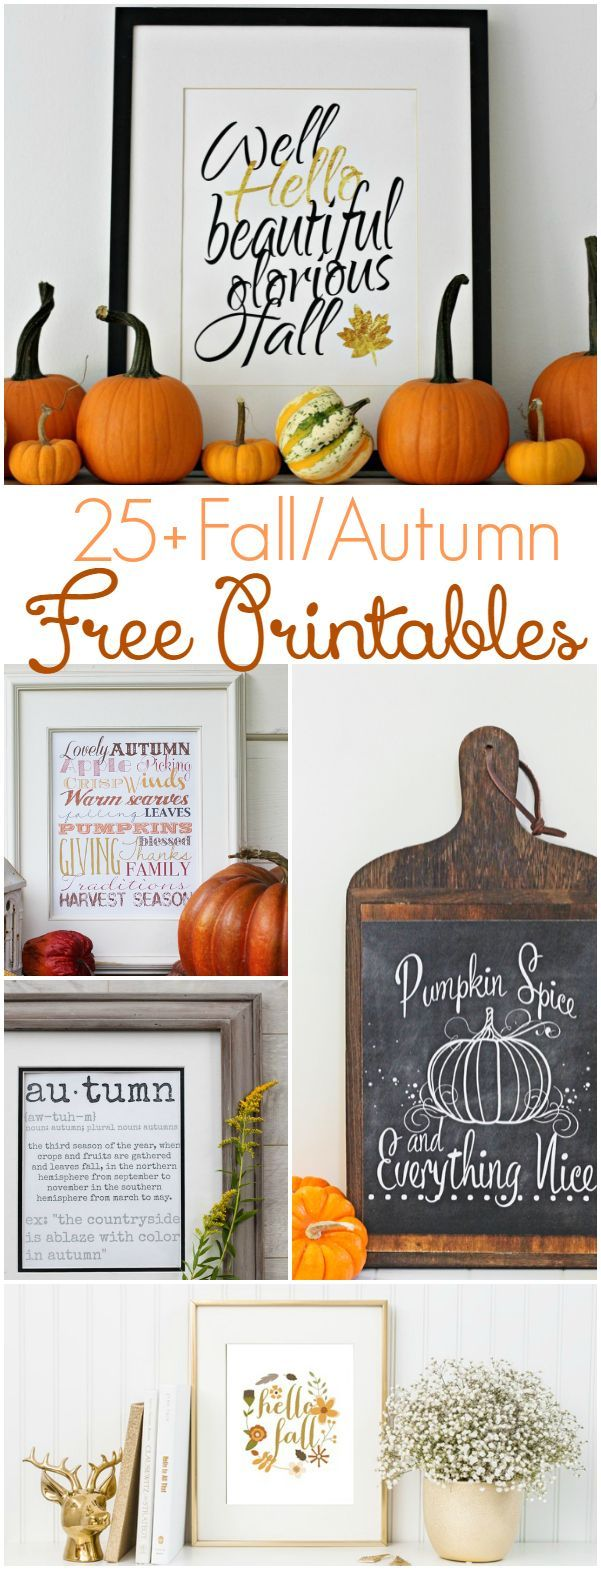 25+ fall free printables | lollyjane.com